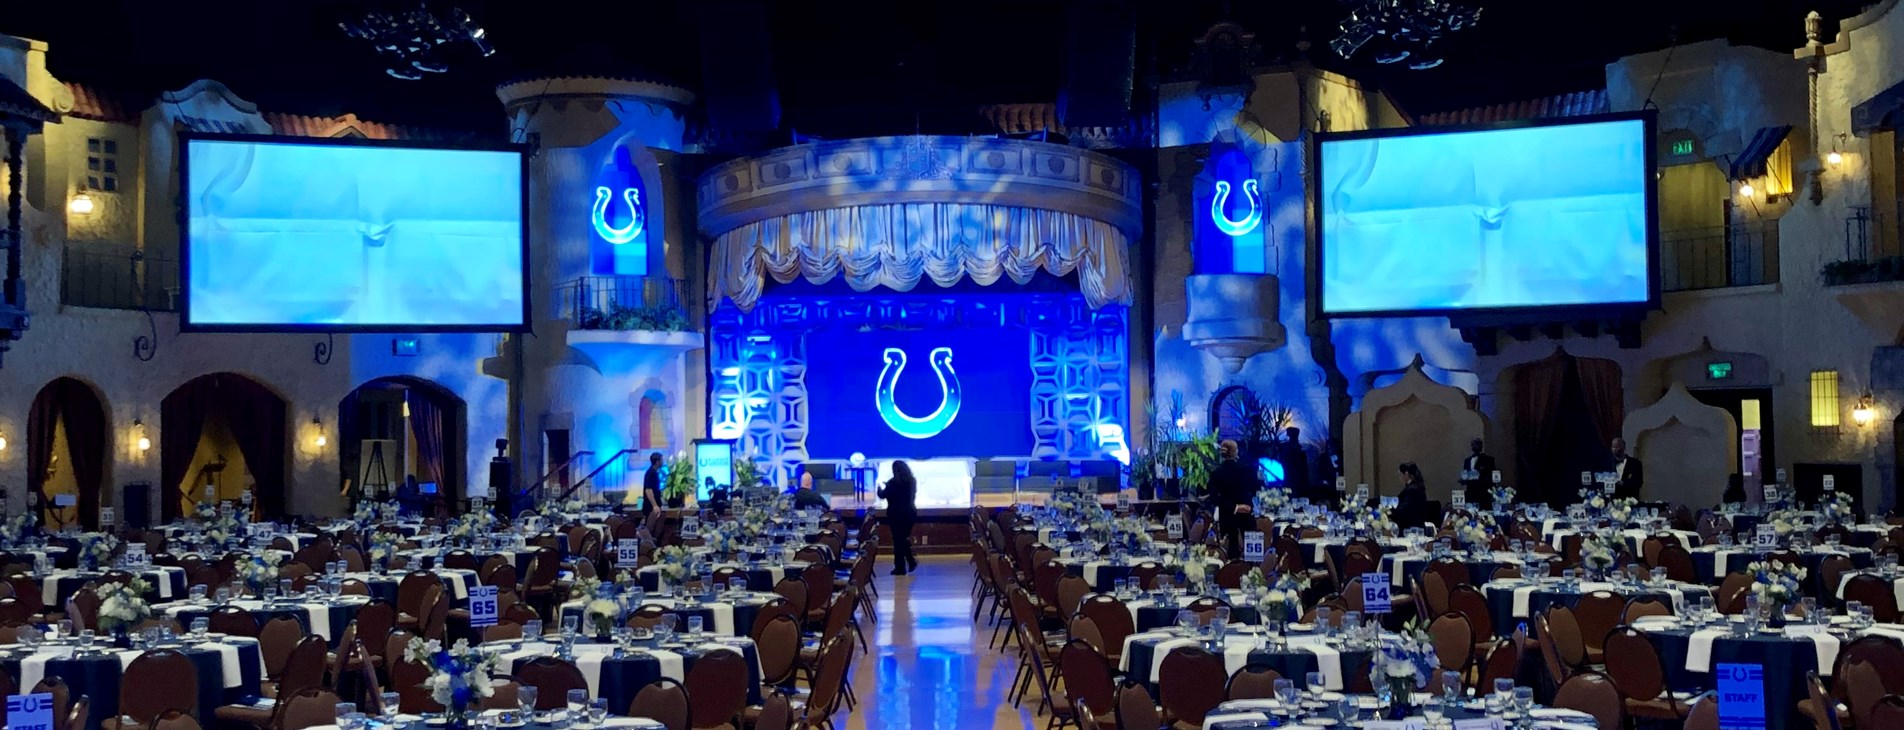 Colts 750 person tip-off lunch at the Indiana roof ballroom and Event Center